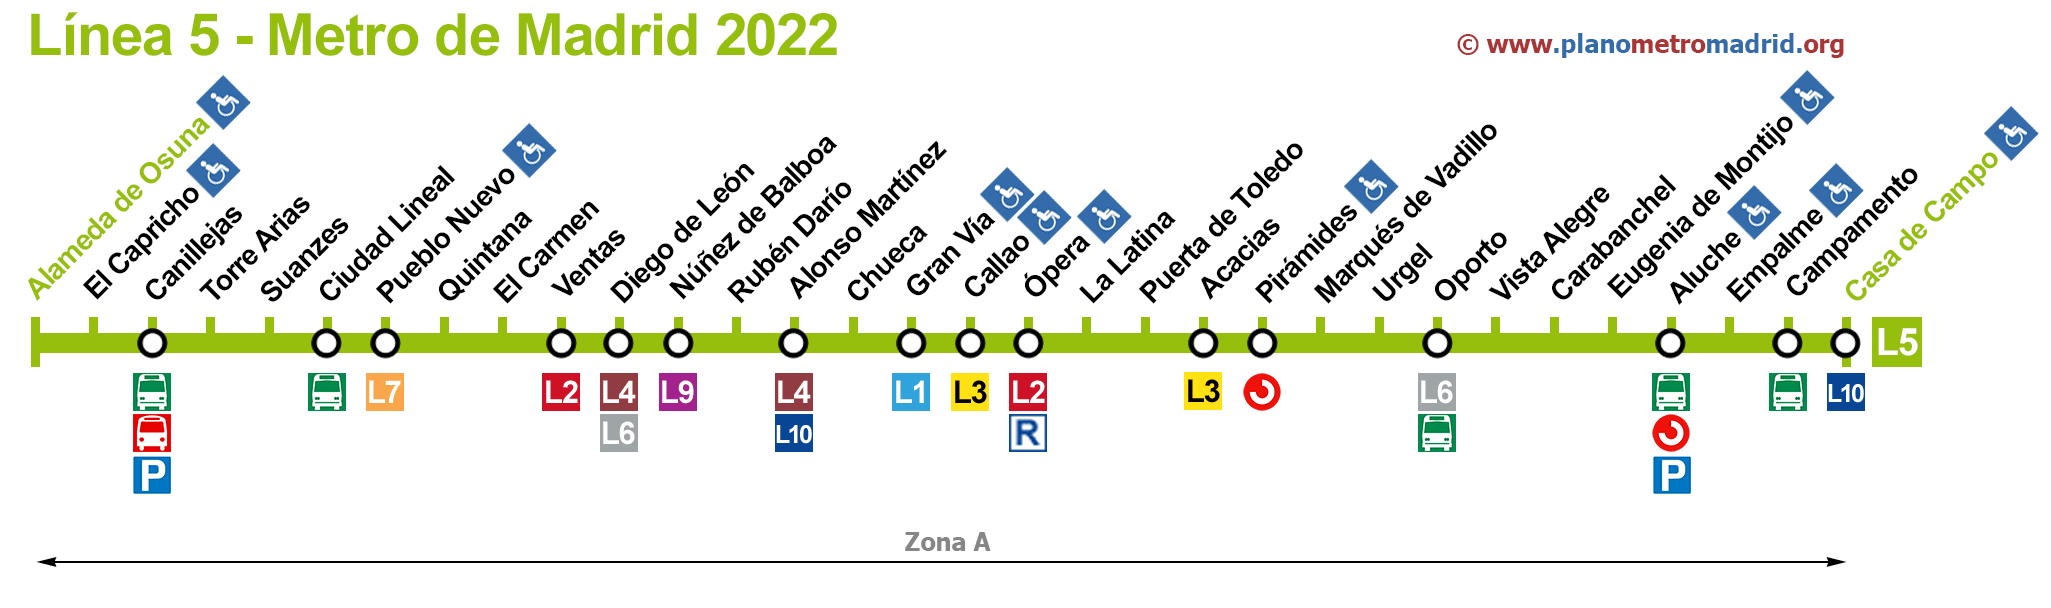 Madrid subway line 5